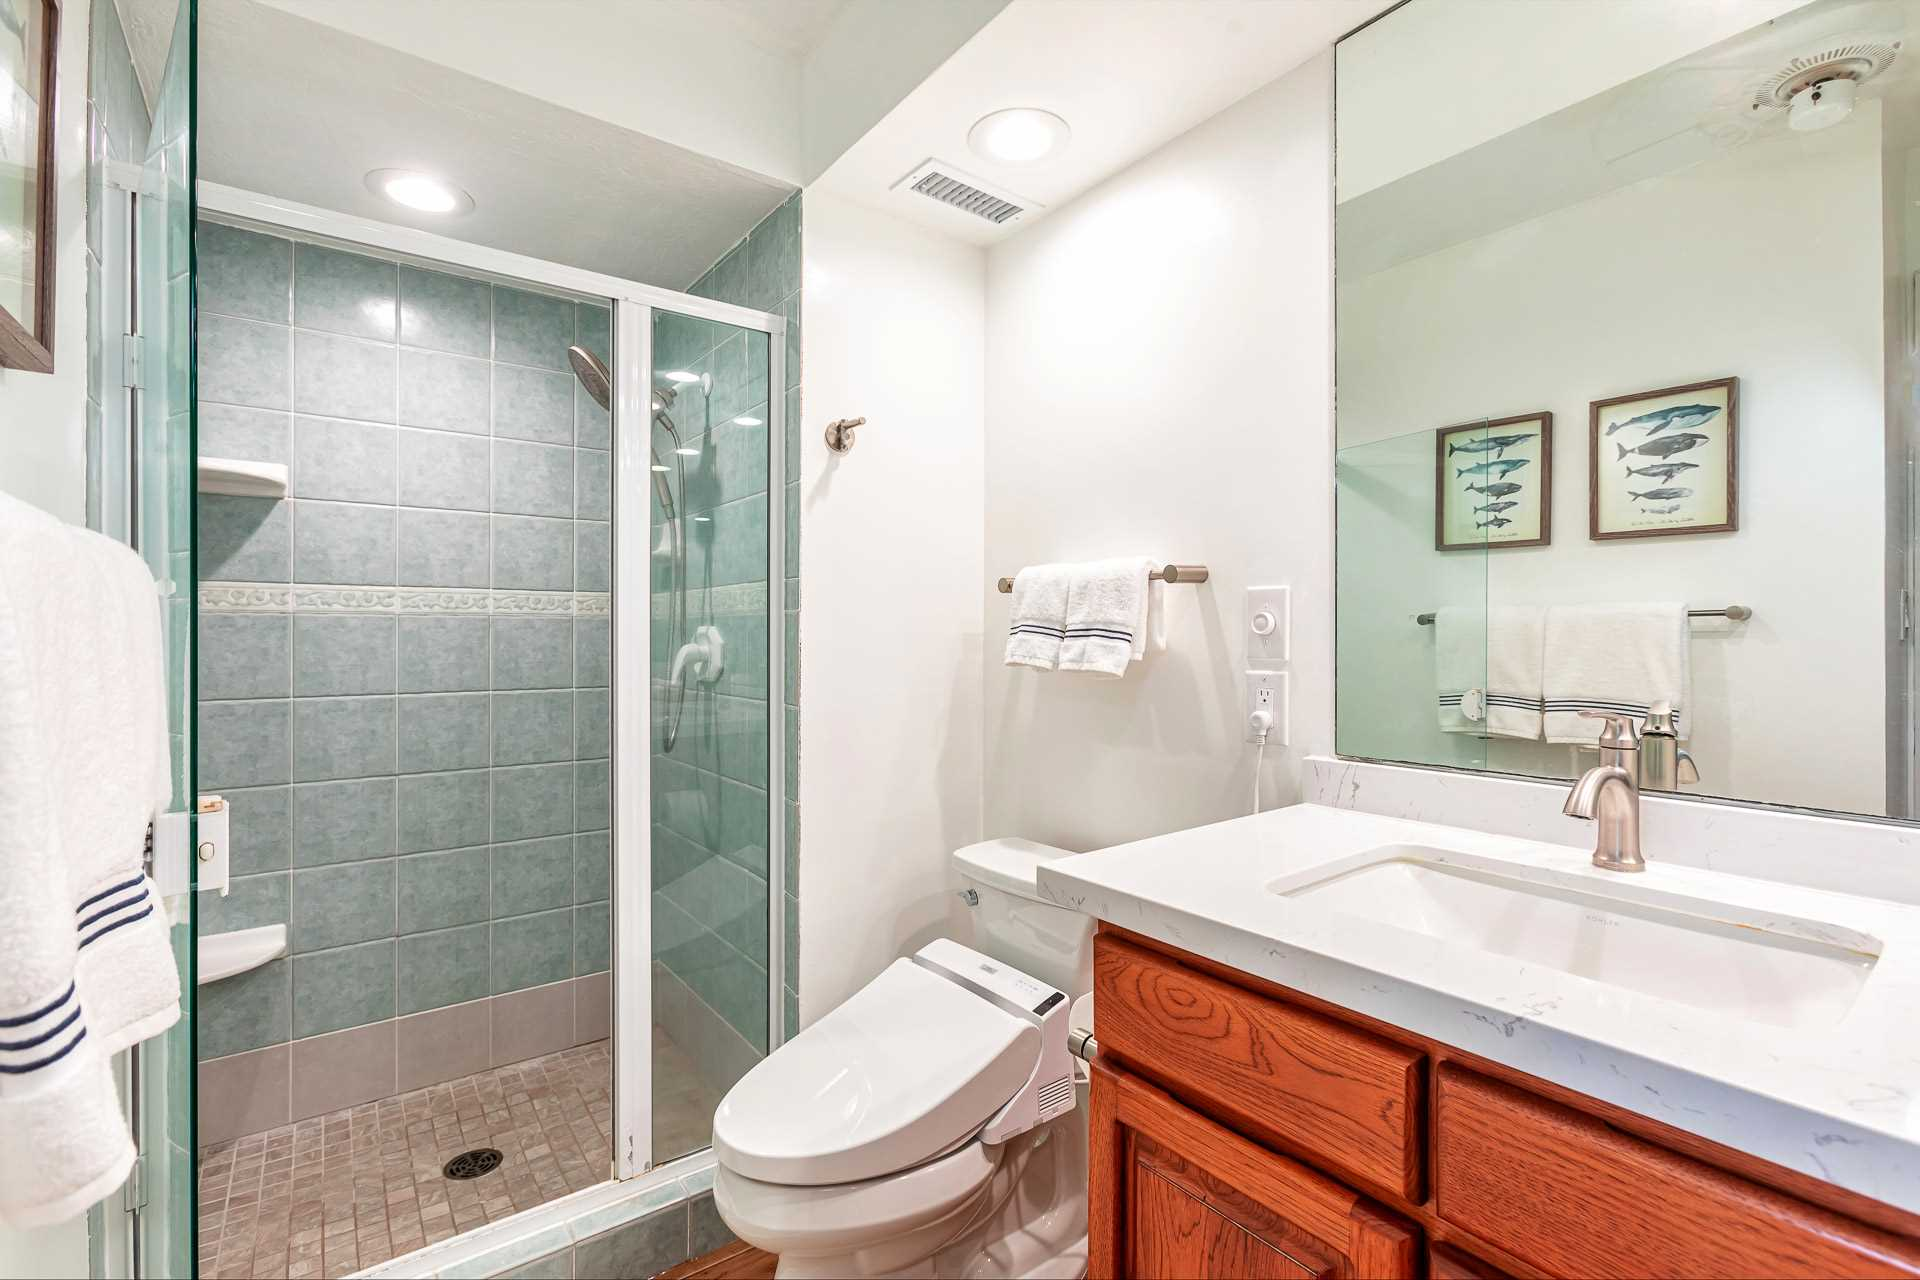 1st bathroom with step-in shower